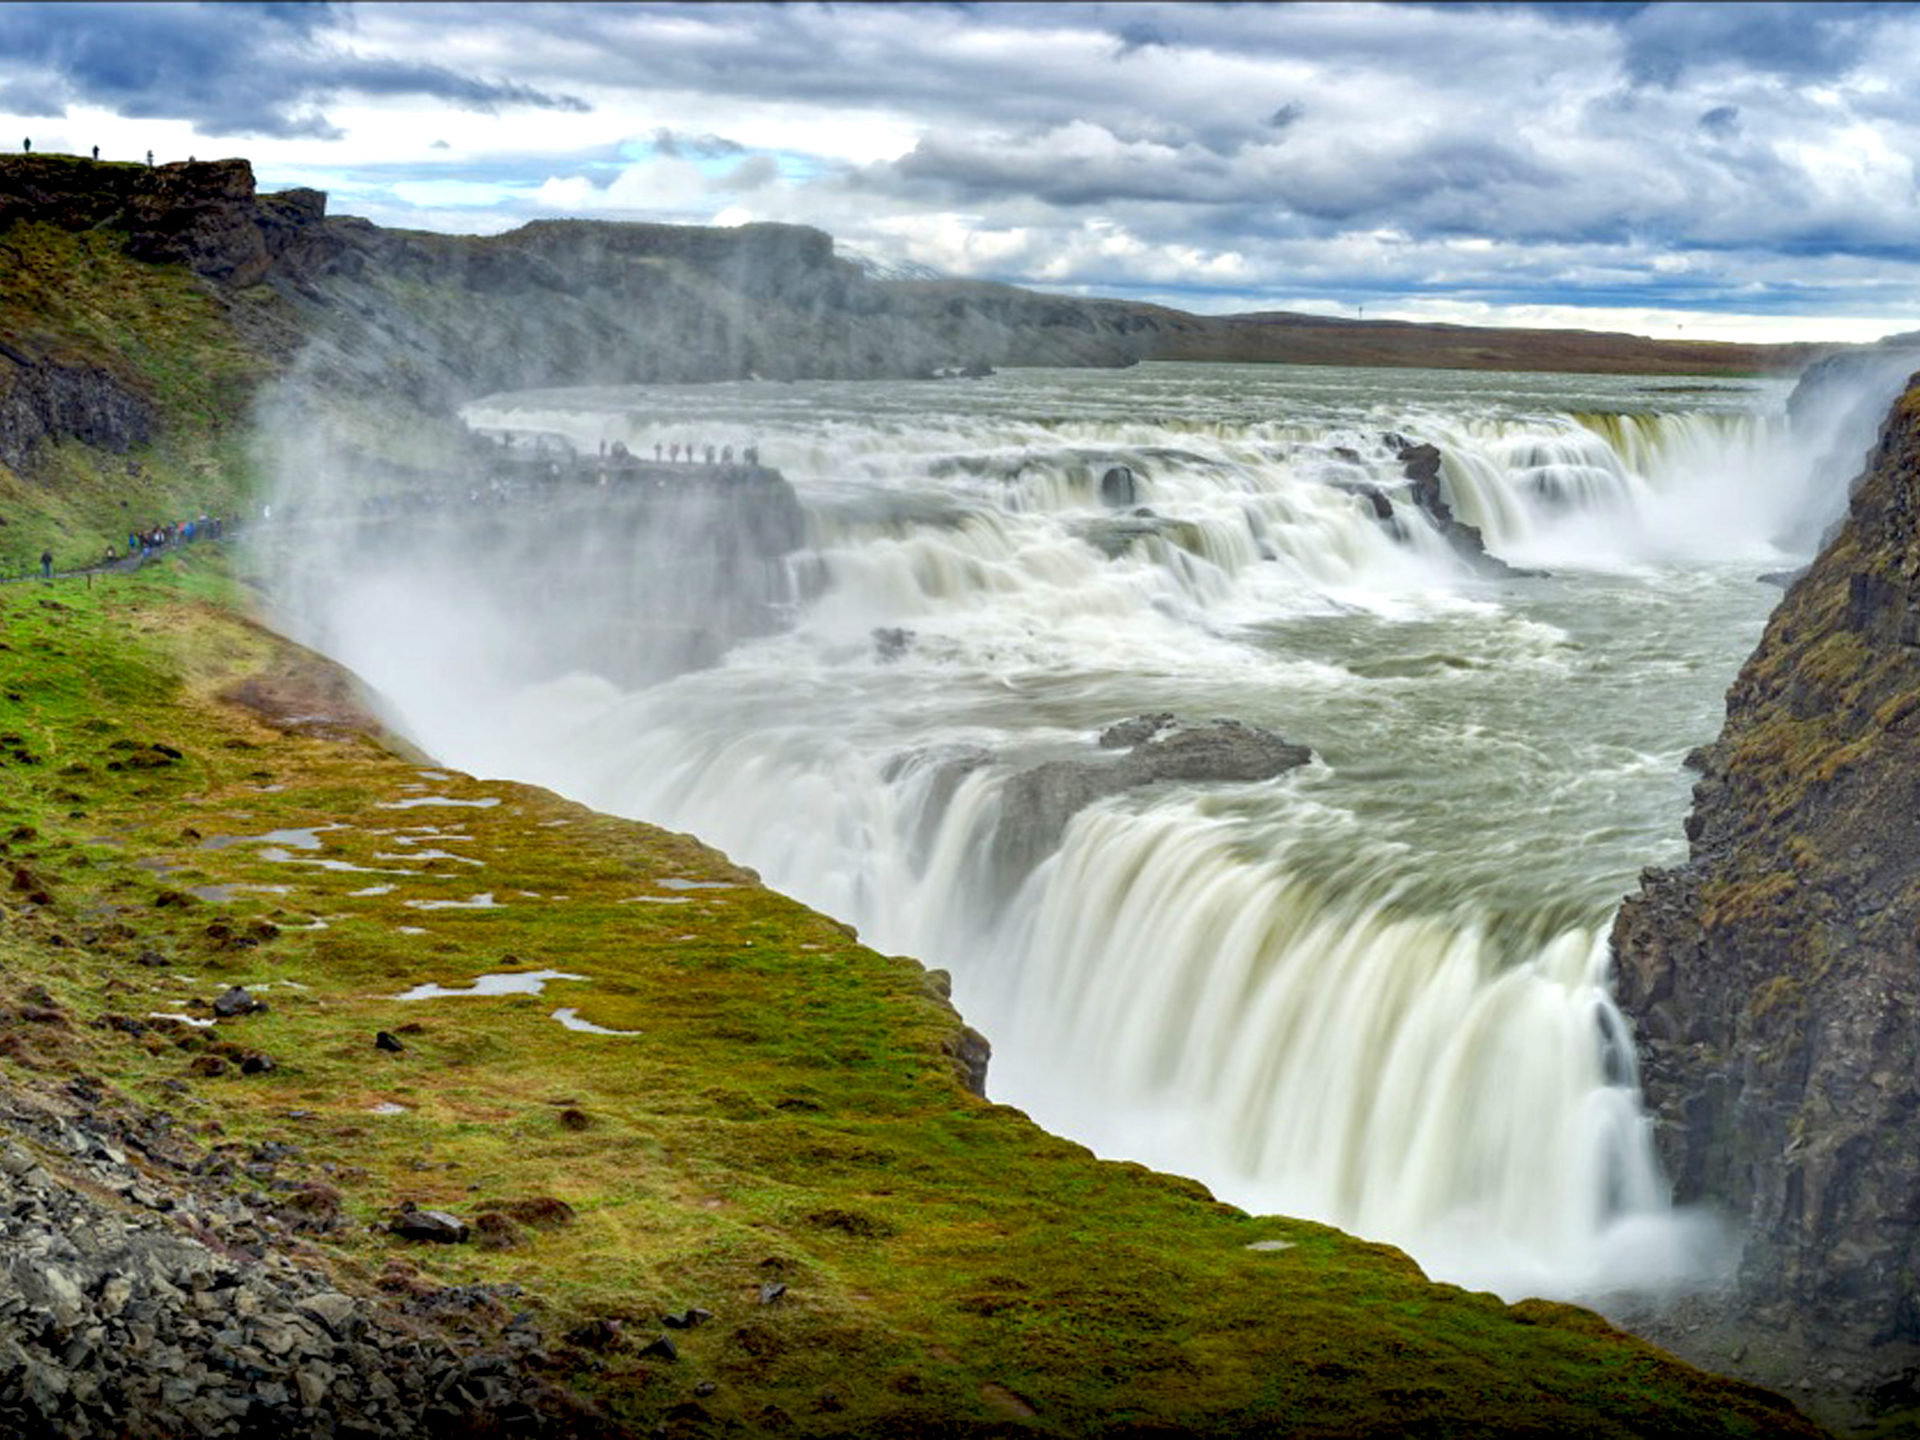 Falls Wallpaper Download Gullfoss Waterfall In Iceland Desktop Wallpaper Hd